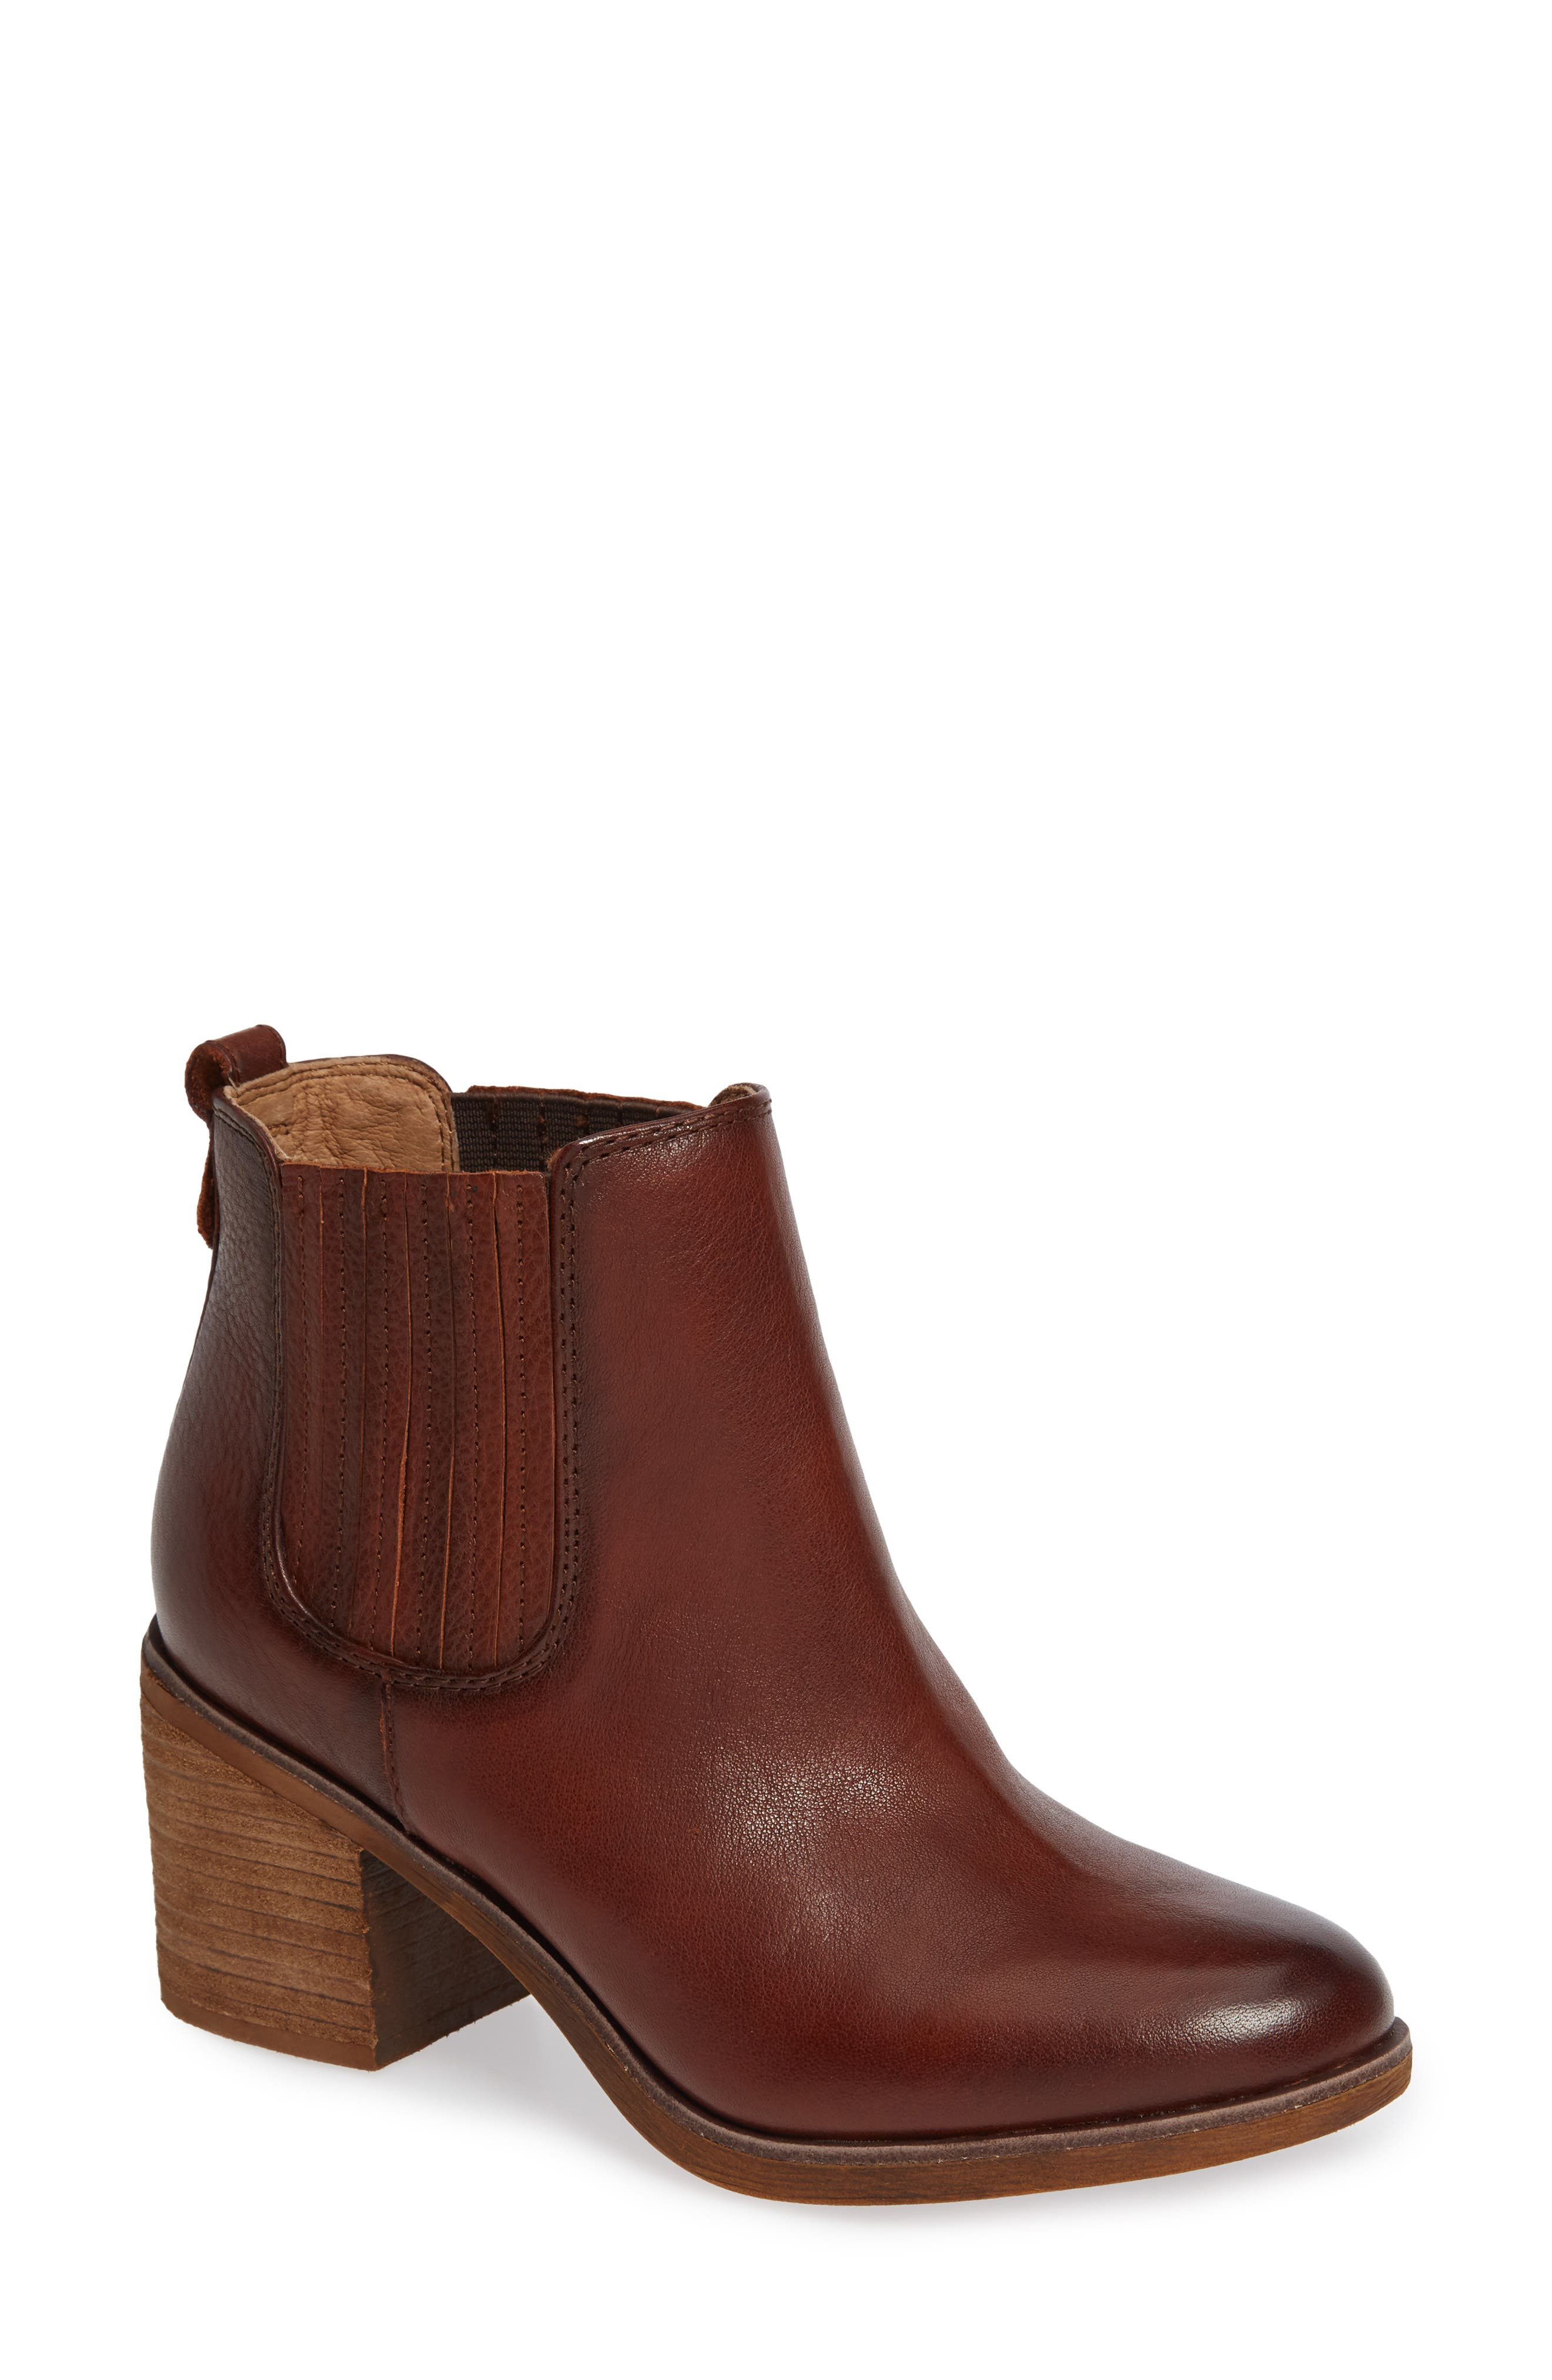 Sadova Chelsea Bootie,                         Main,                         color, WHISKEY LEATHER